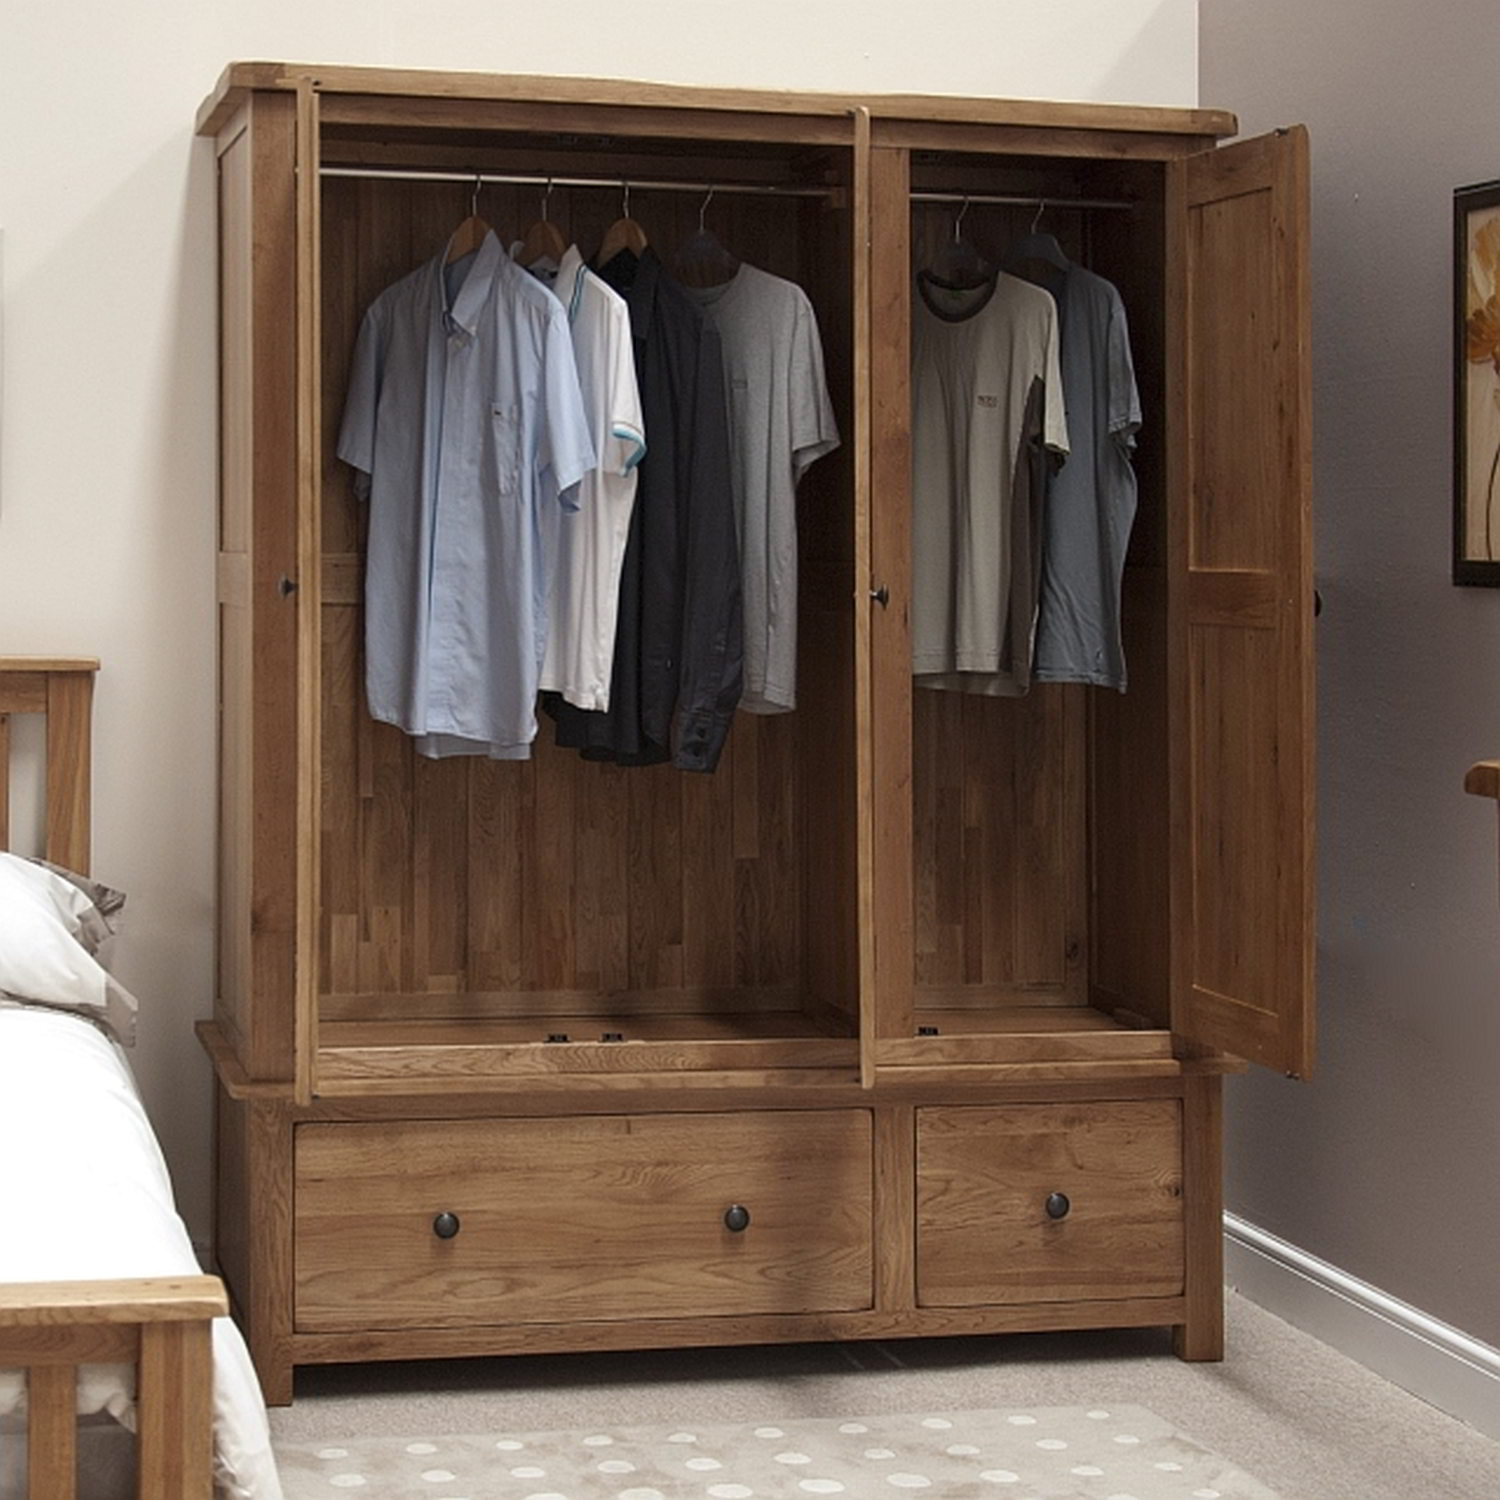 tilson solid oak bedroom furniture large triple wardrobe. Black Bedroom Furniture Sets. Home Design Ideas